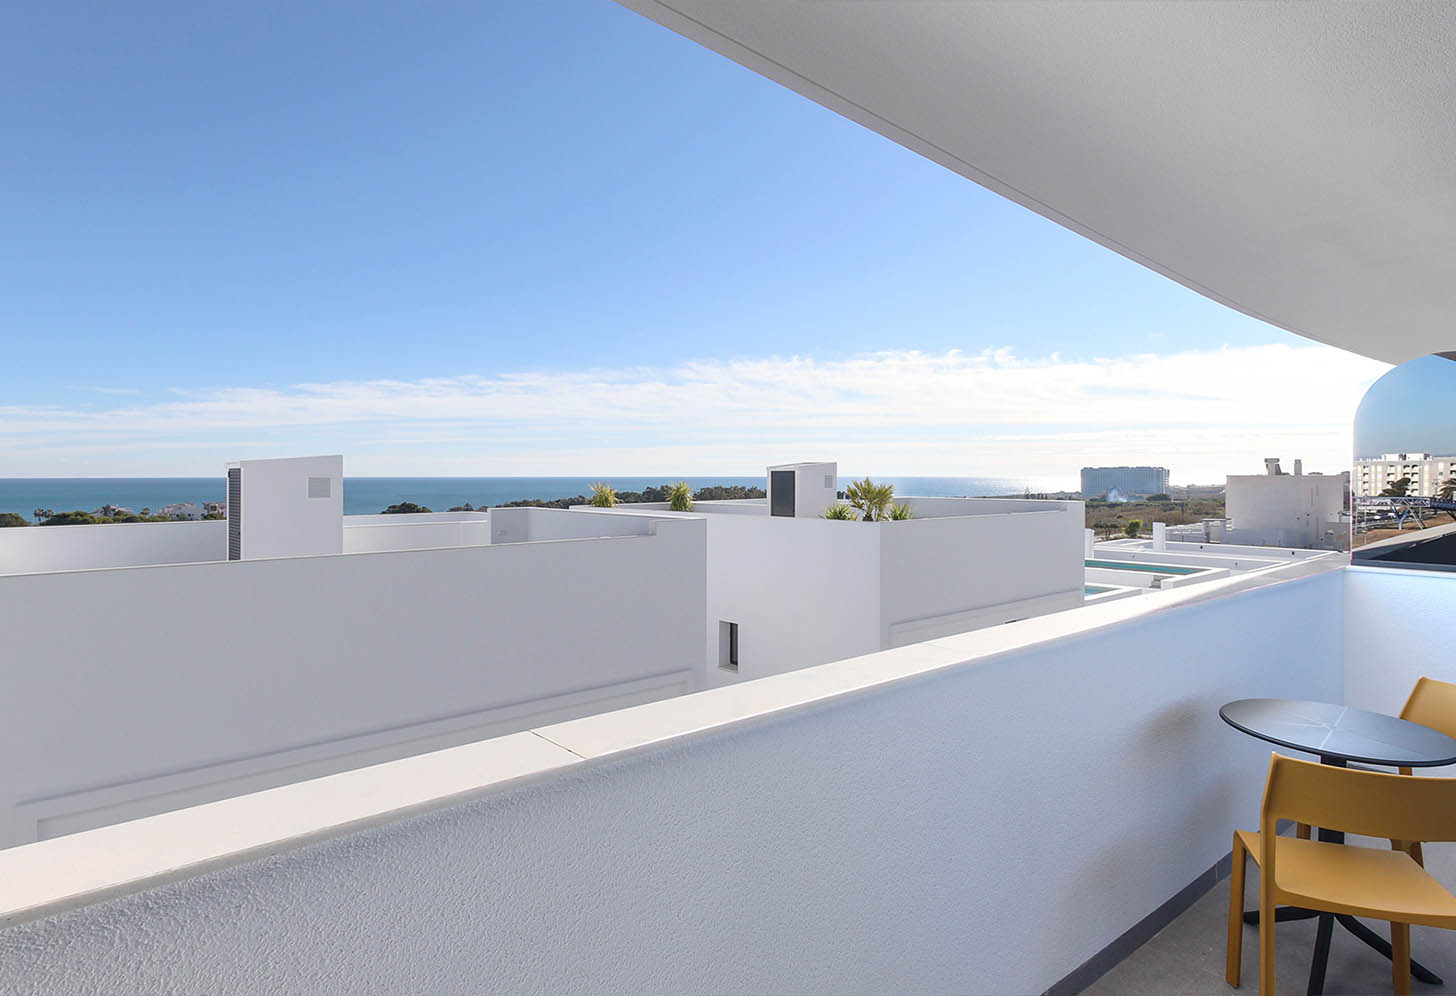 immobilier neuf espagne costa blanca on-3 essence apparts terrasse